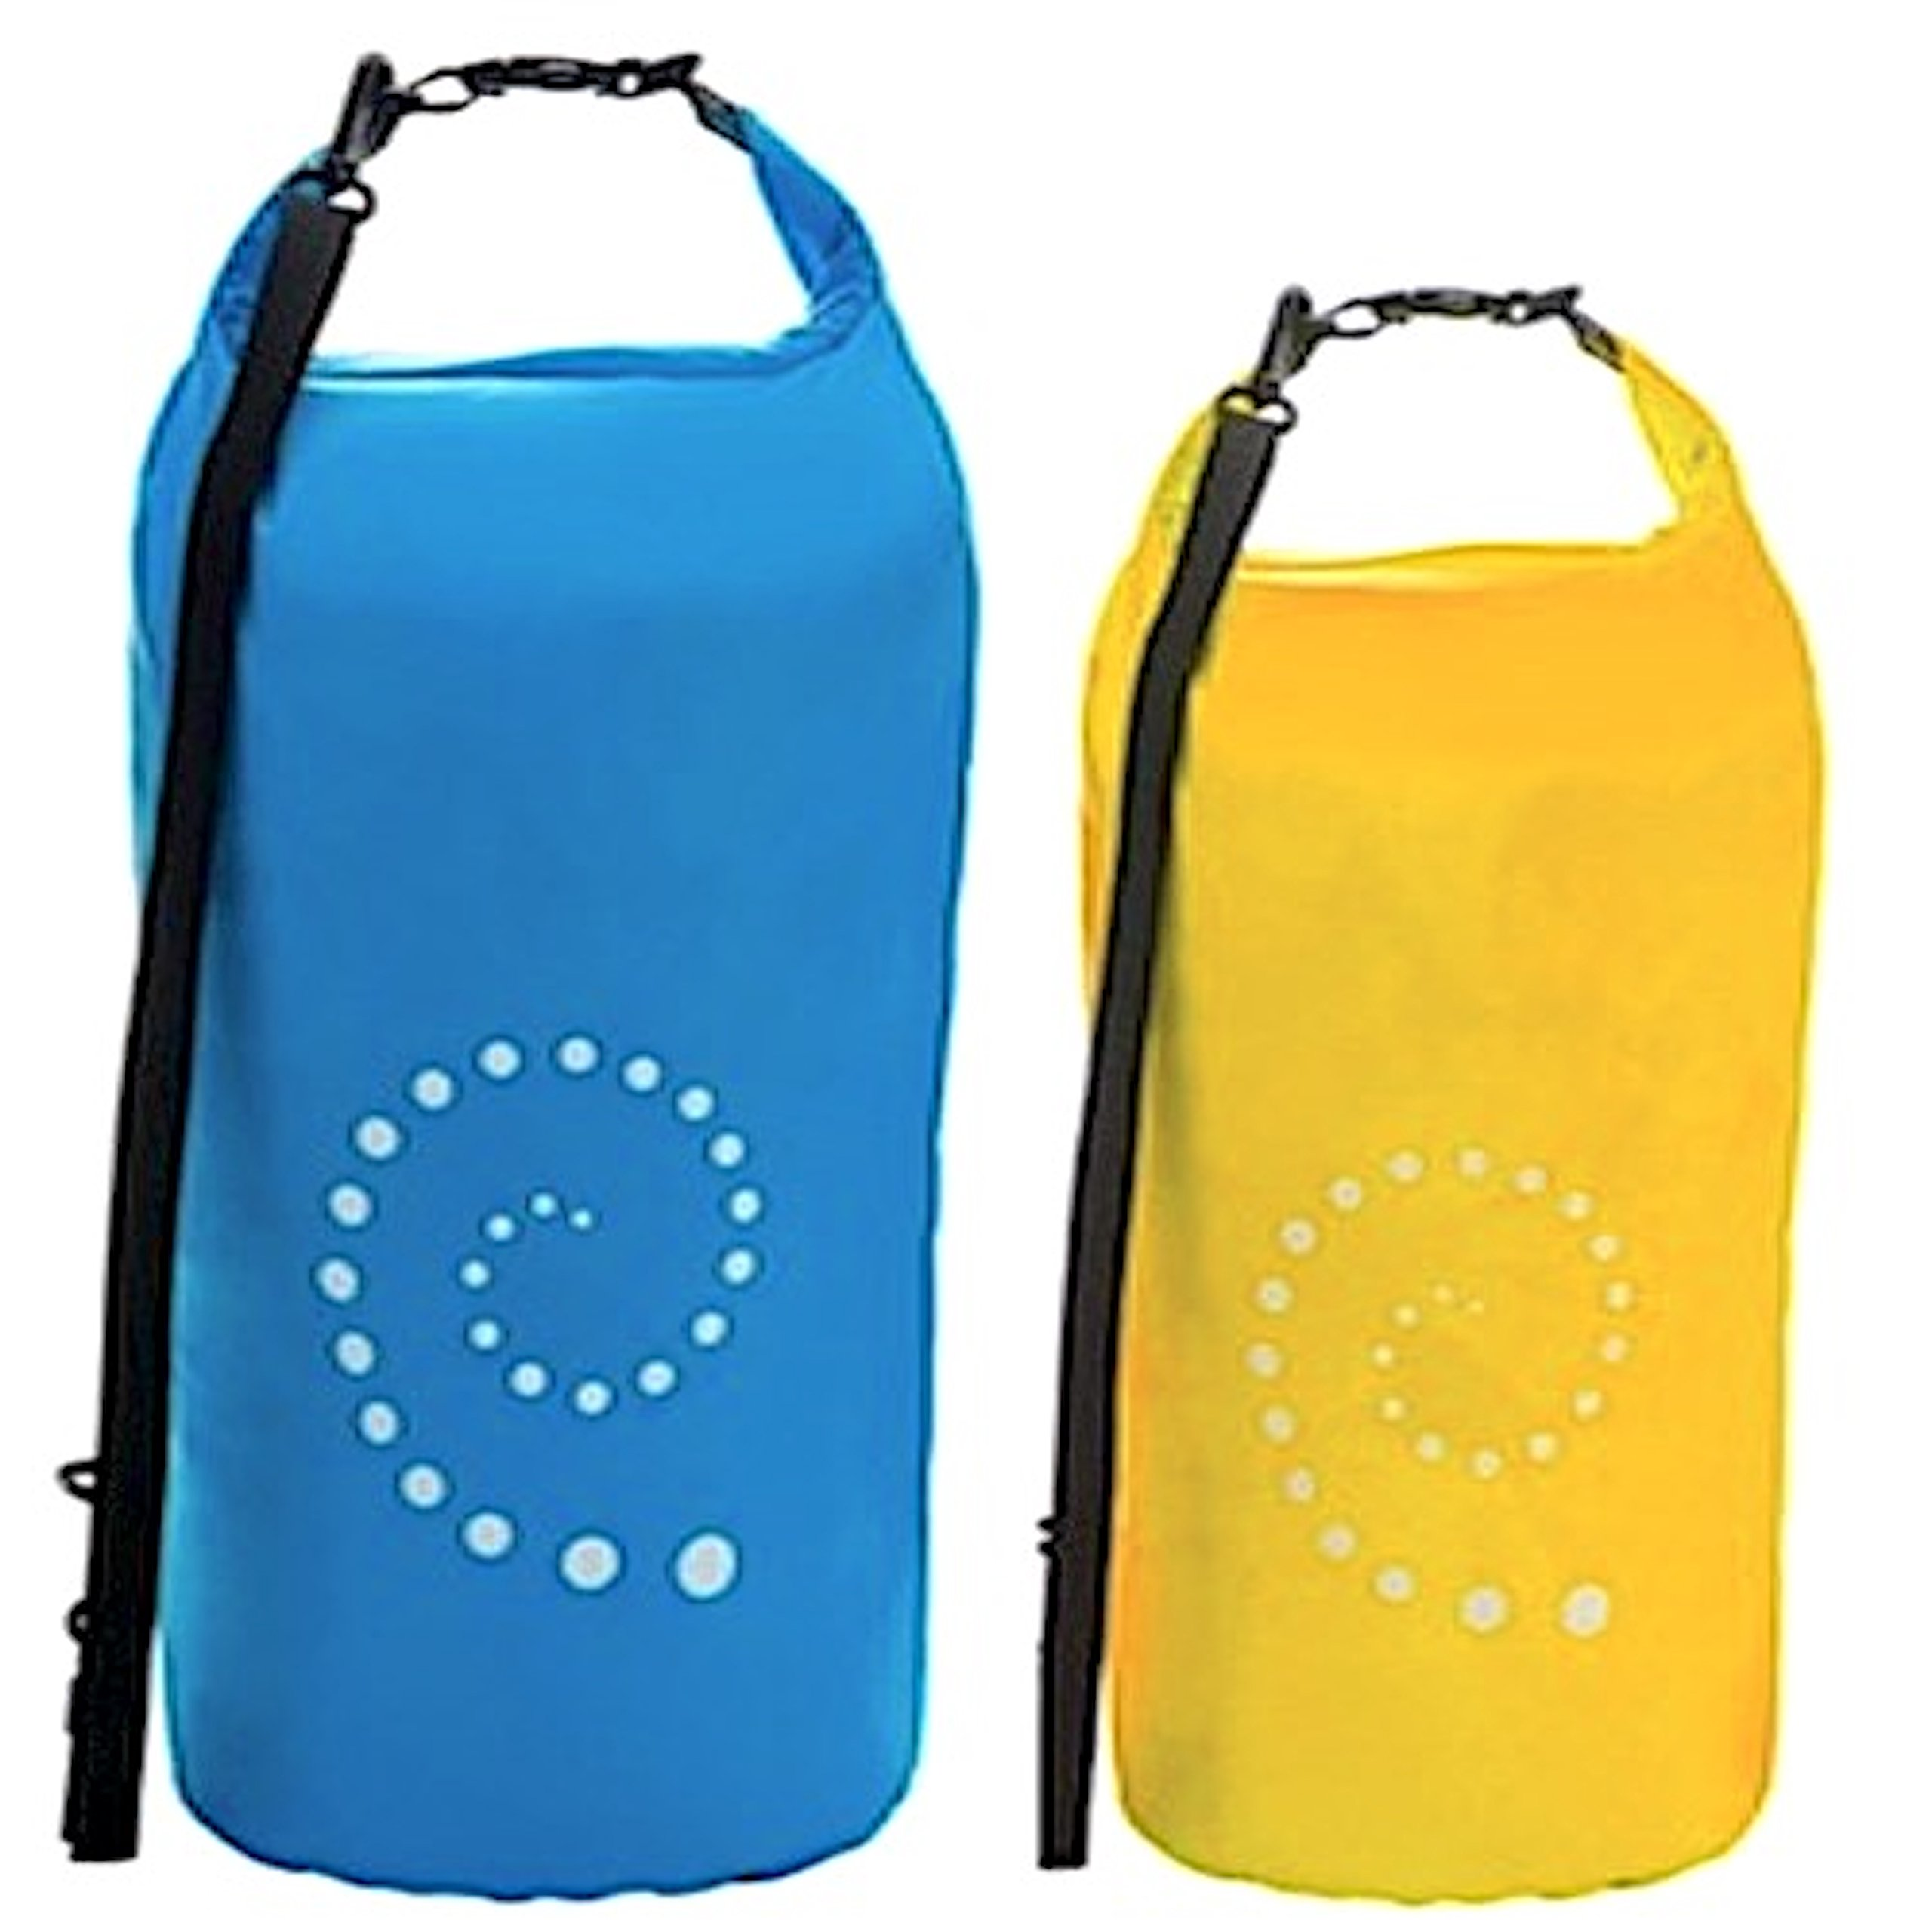 Fiddlehead ~ Blue 20L / Yellow 10L Lightweight Ultralight Waterproof Floating Dry Bag Set (2) - Roll Top Closure Compression Stuff Sacks - Be Ready For Your Next Camping, Paddling, Kayaking, Hiking